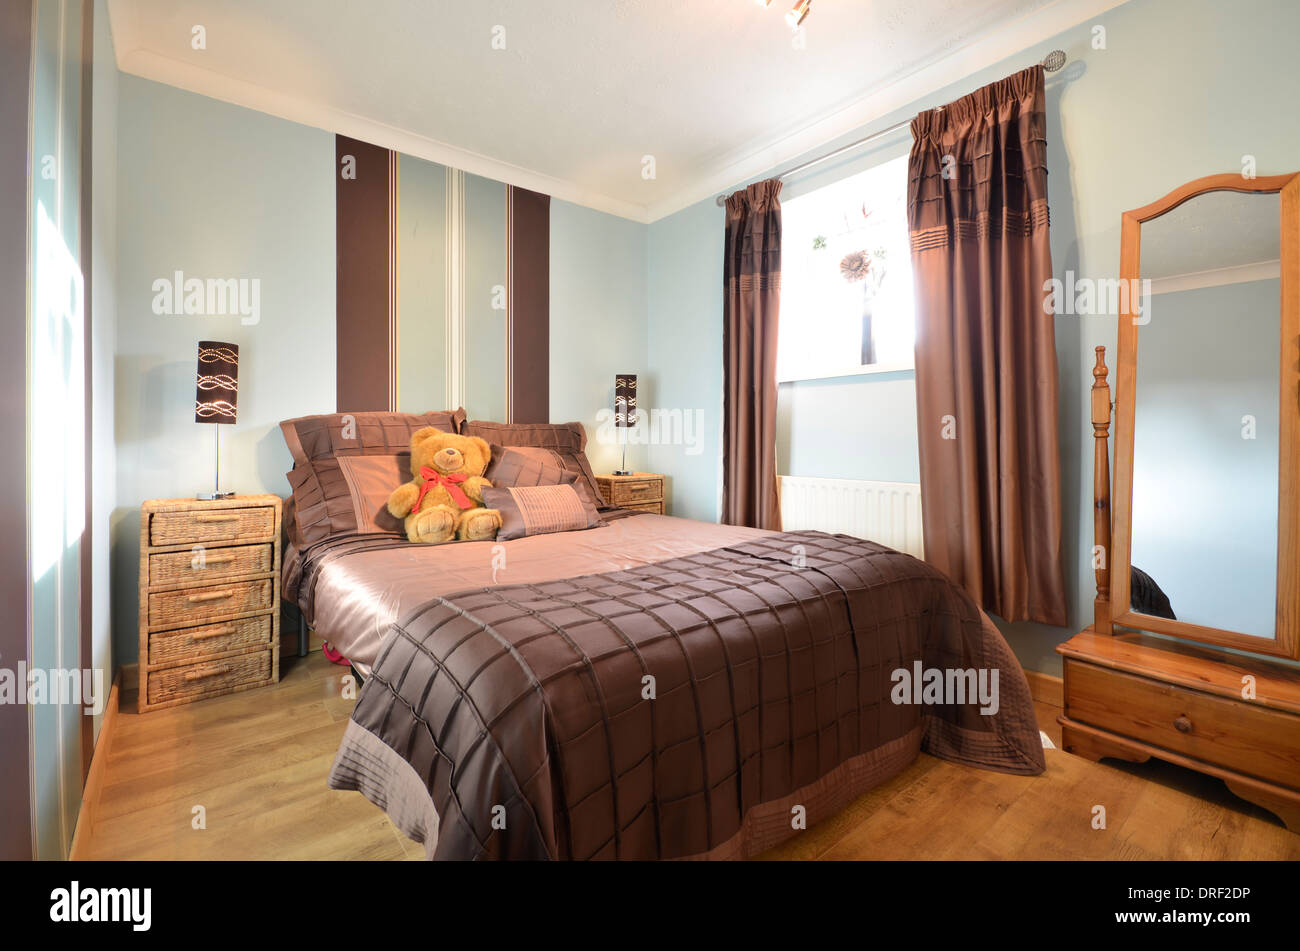 stylish spare bedroom with double bed and pine furniture - Stock Image